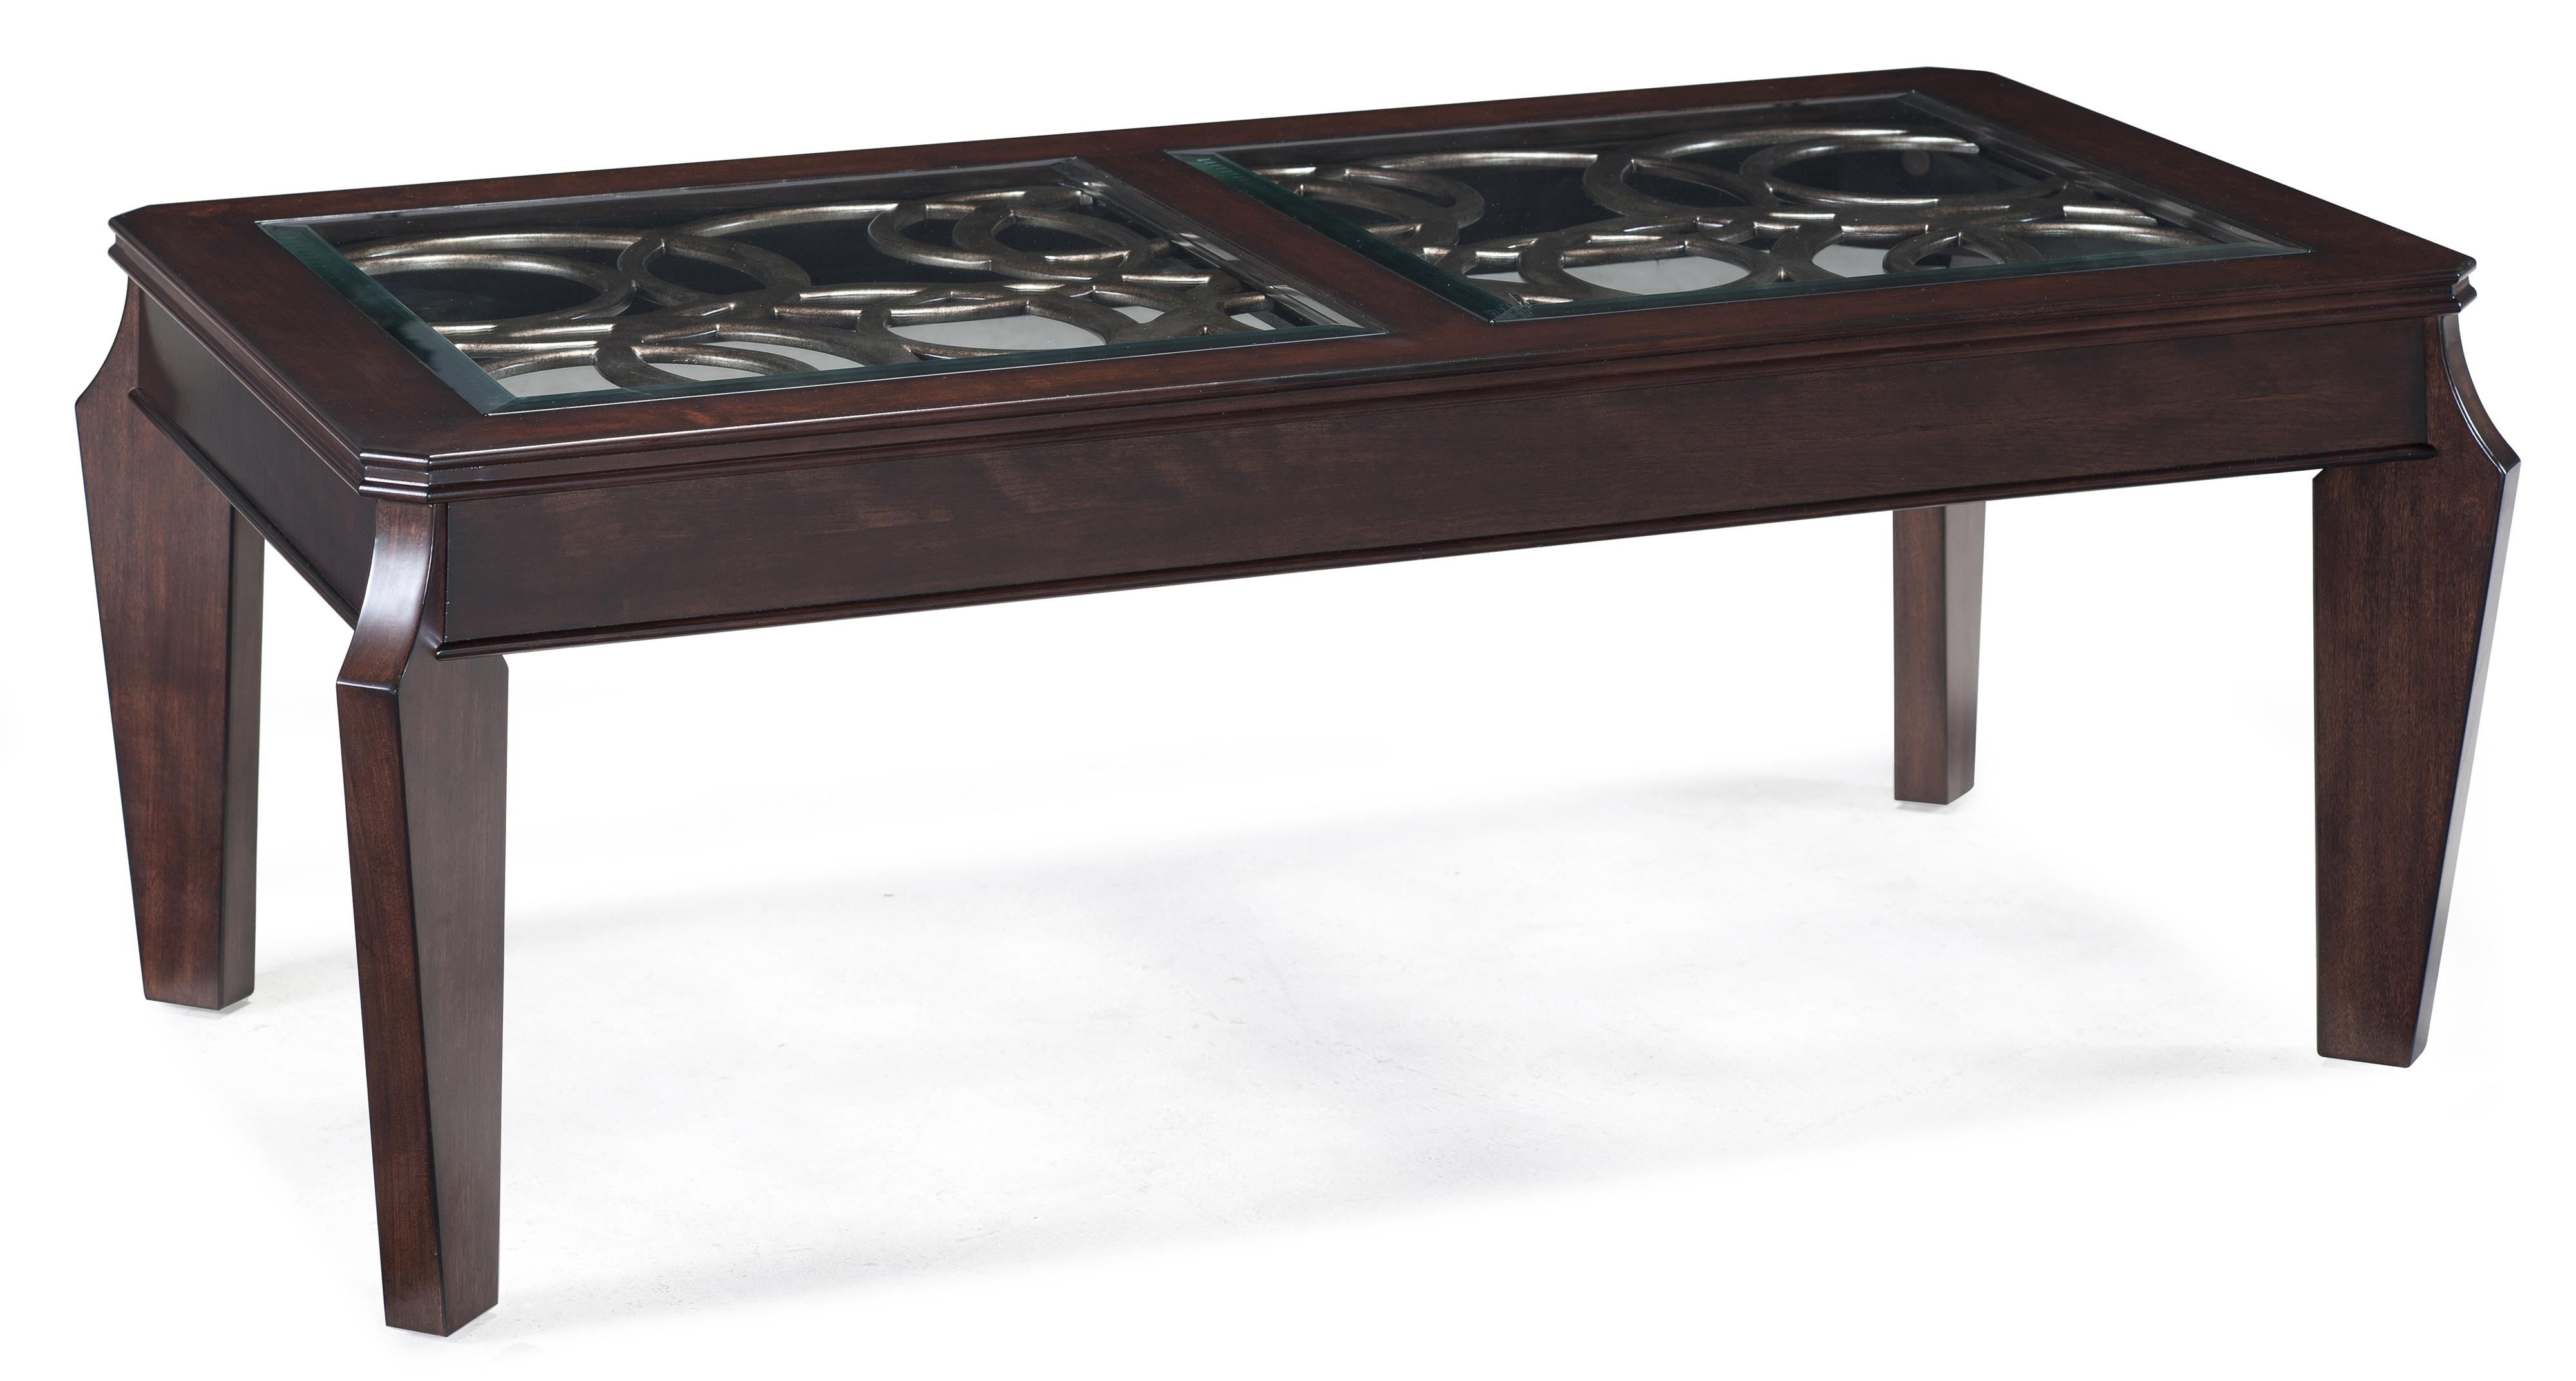 Magnussen Home Ombrio Rectangular Cocktail Table - Item Number: T2034-43